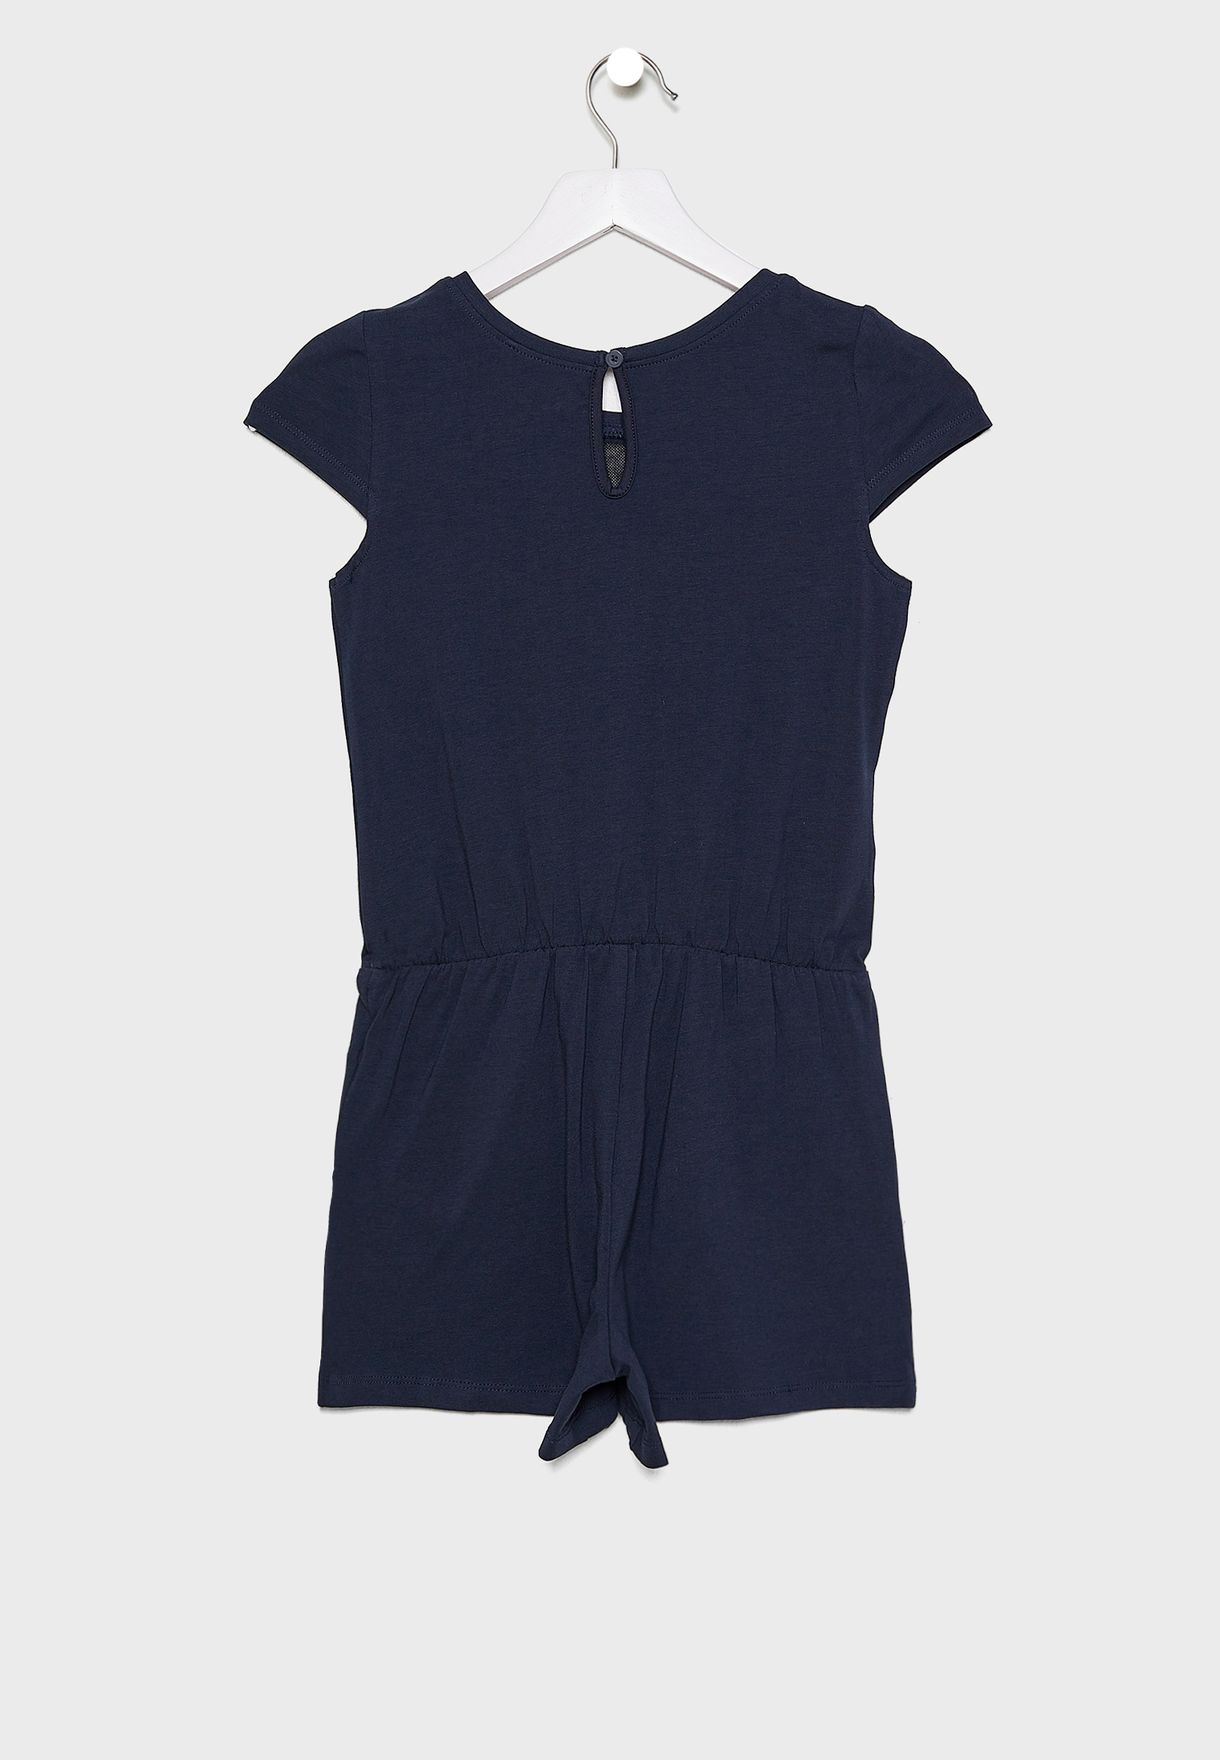 Youth Playsuit